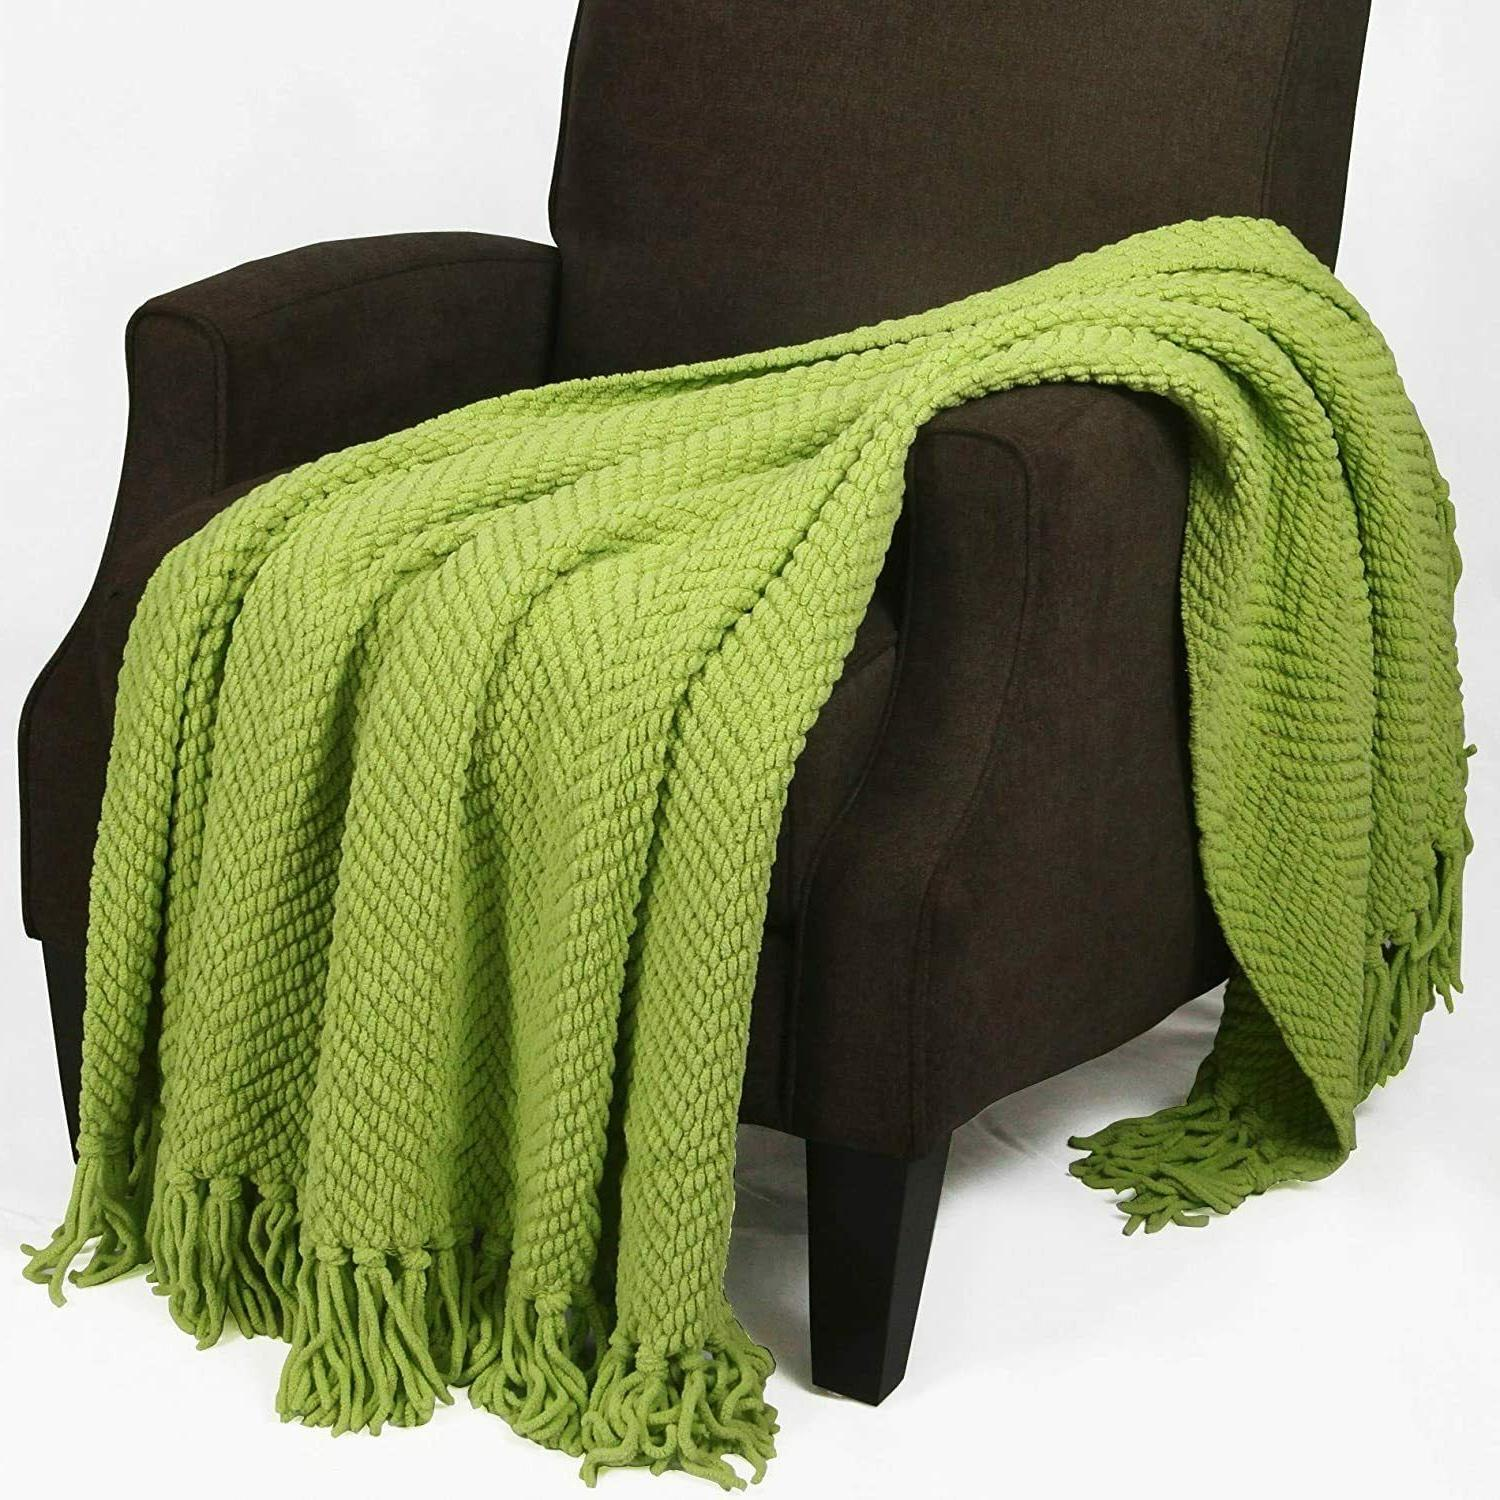 Knitted Tweed Throw Couch Cover Blanket, 50x60, Citron by Ho